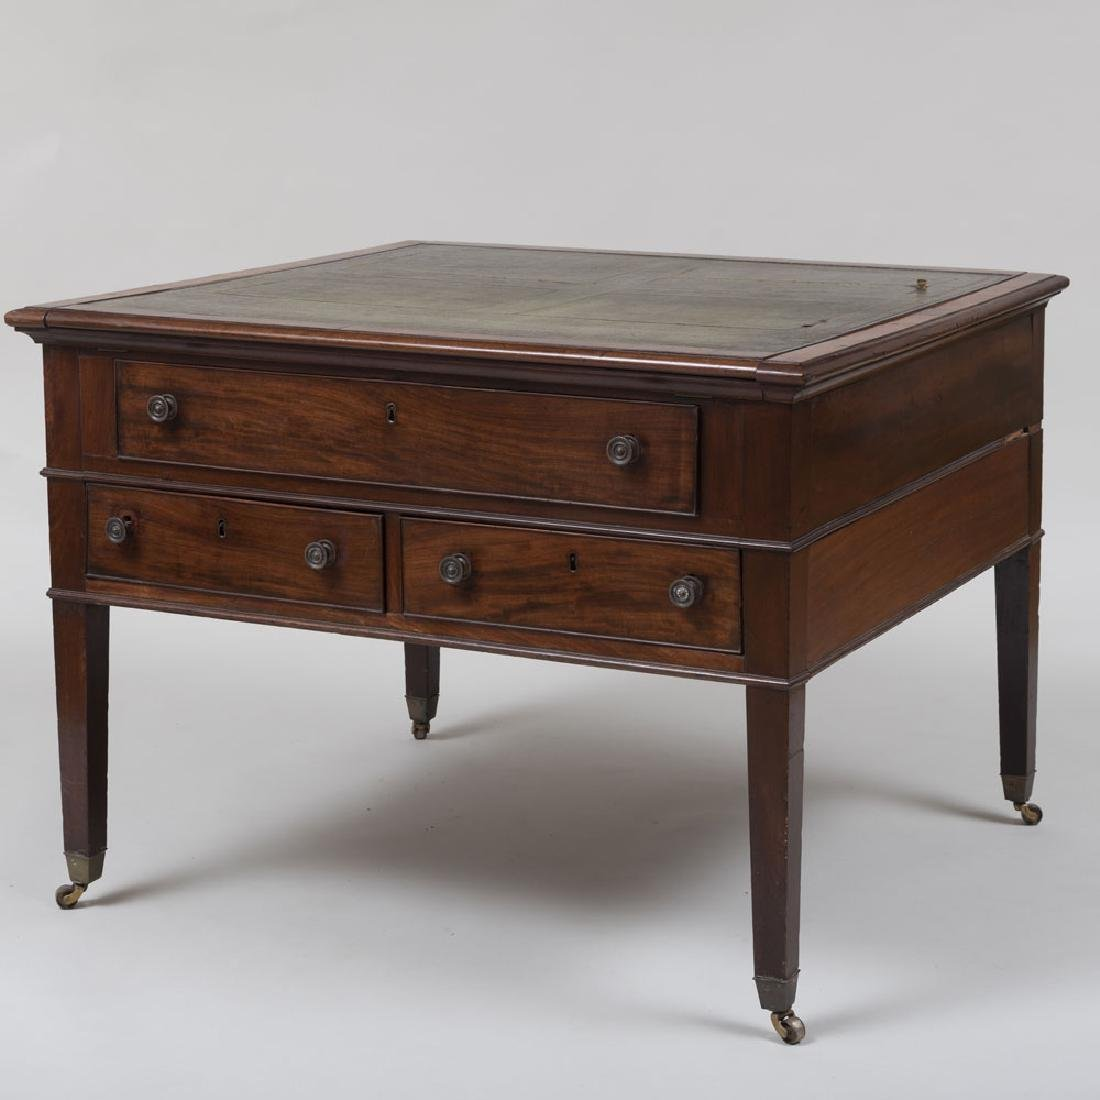 Late George III Mahogany Partner's Desk - 5